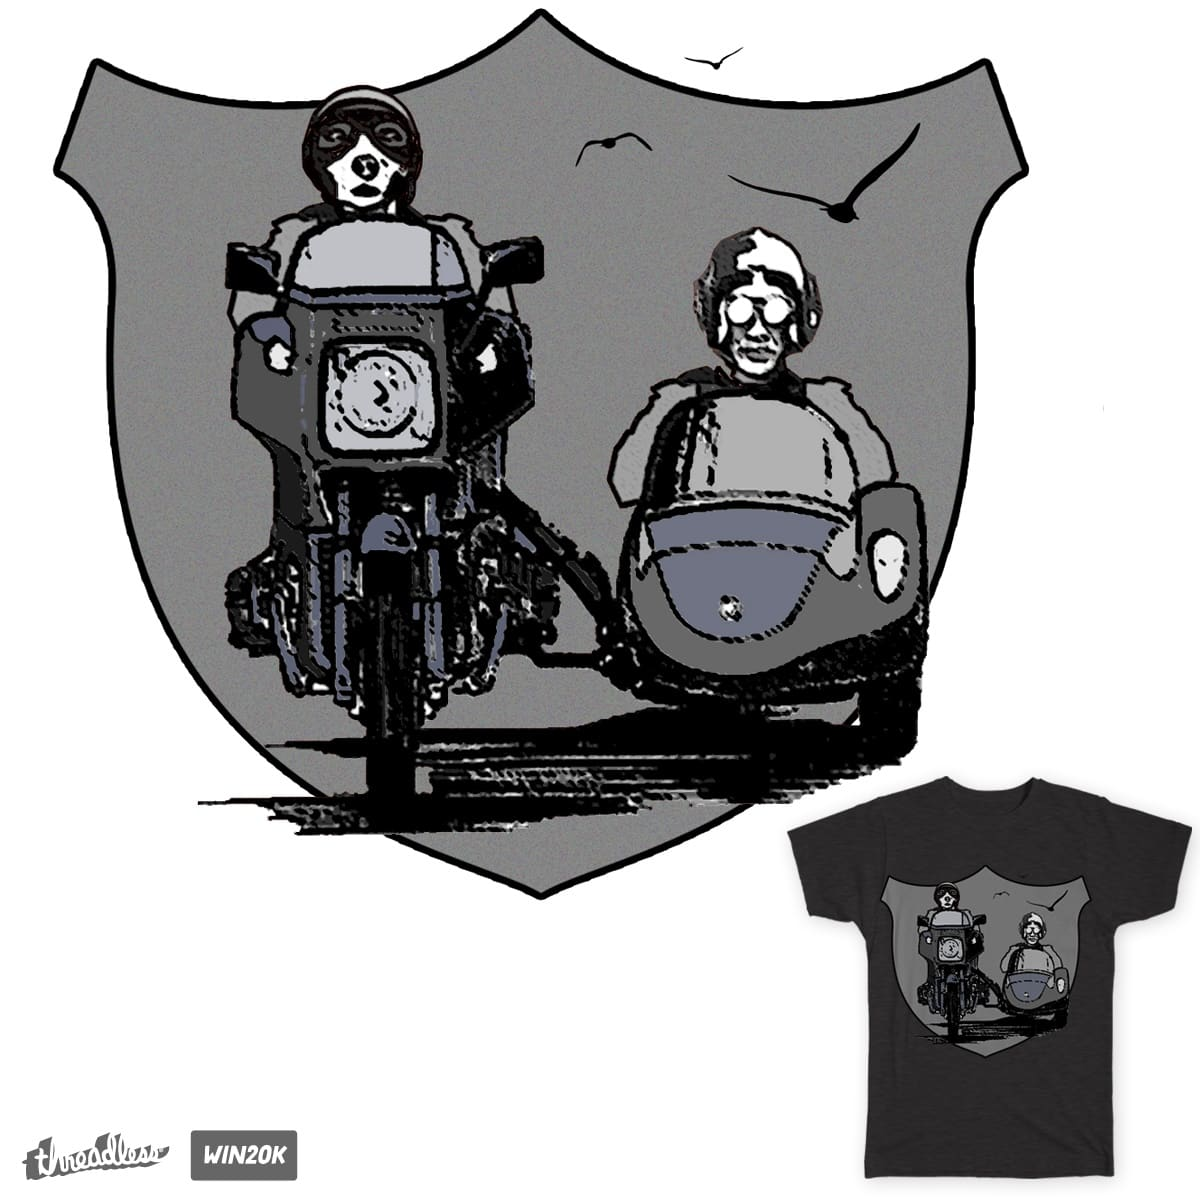 THe adventures of eight legs and a tail by AvinashBhatU on Threadless